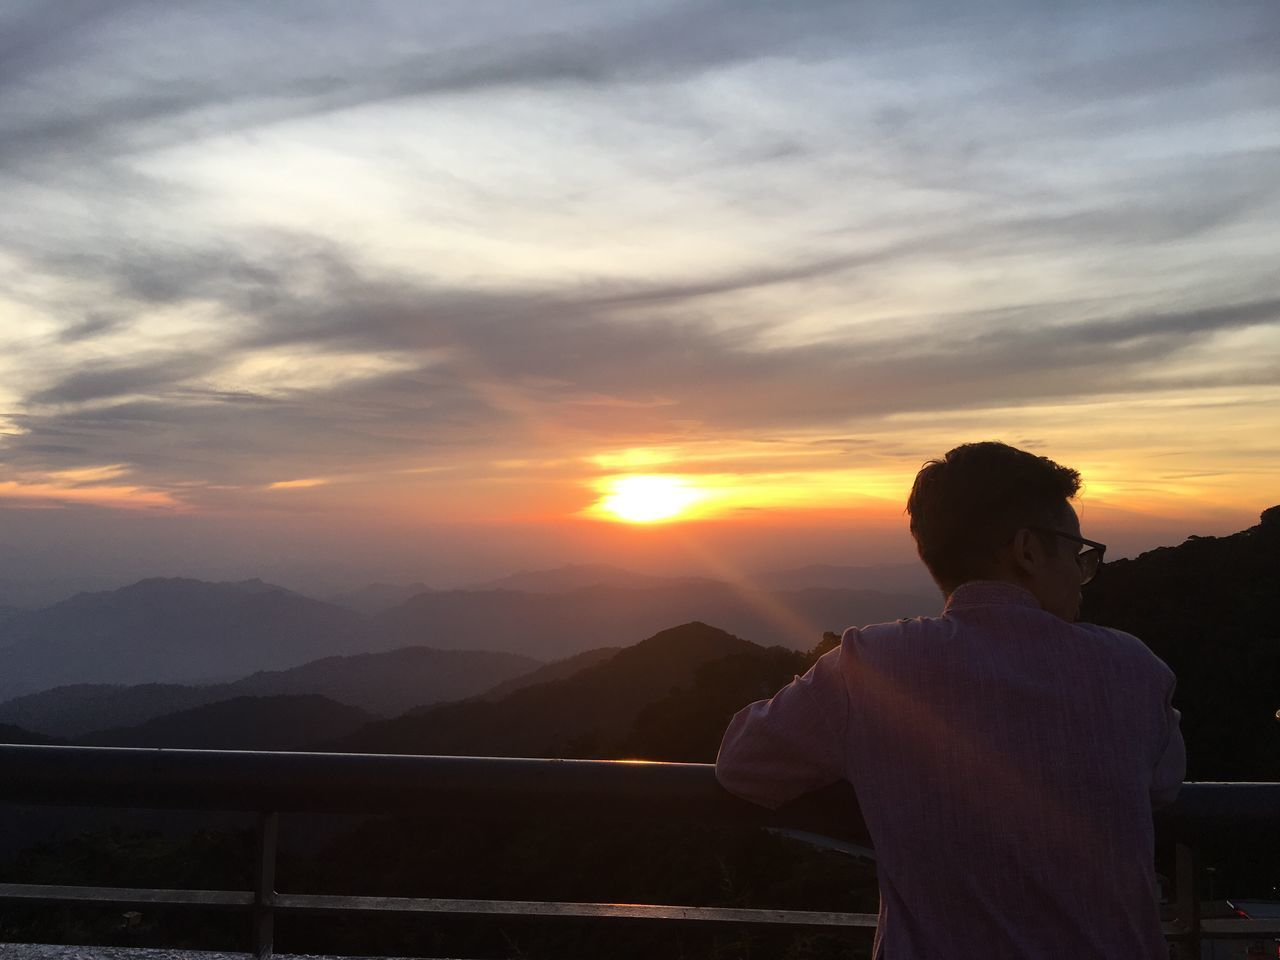 sunset, real people, sky, one person, scenics, nature, mountain, standing, rear view, lifestyles, leisure activity, sun, beauty in nature, looking at view, outdoors, cloud - sky, silhouette, men, day, people